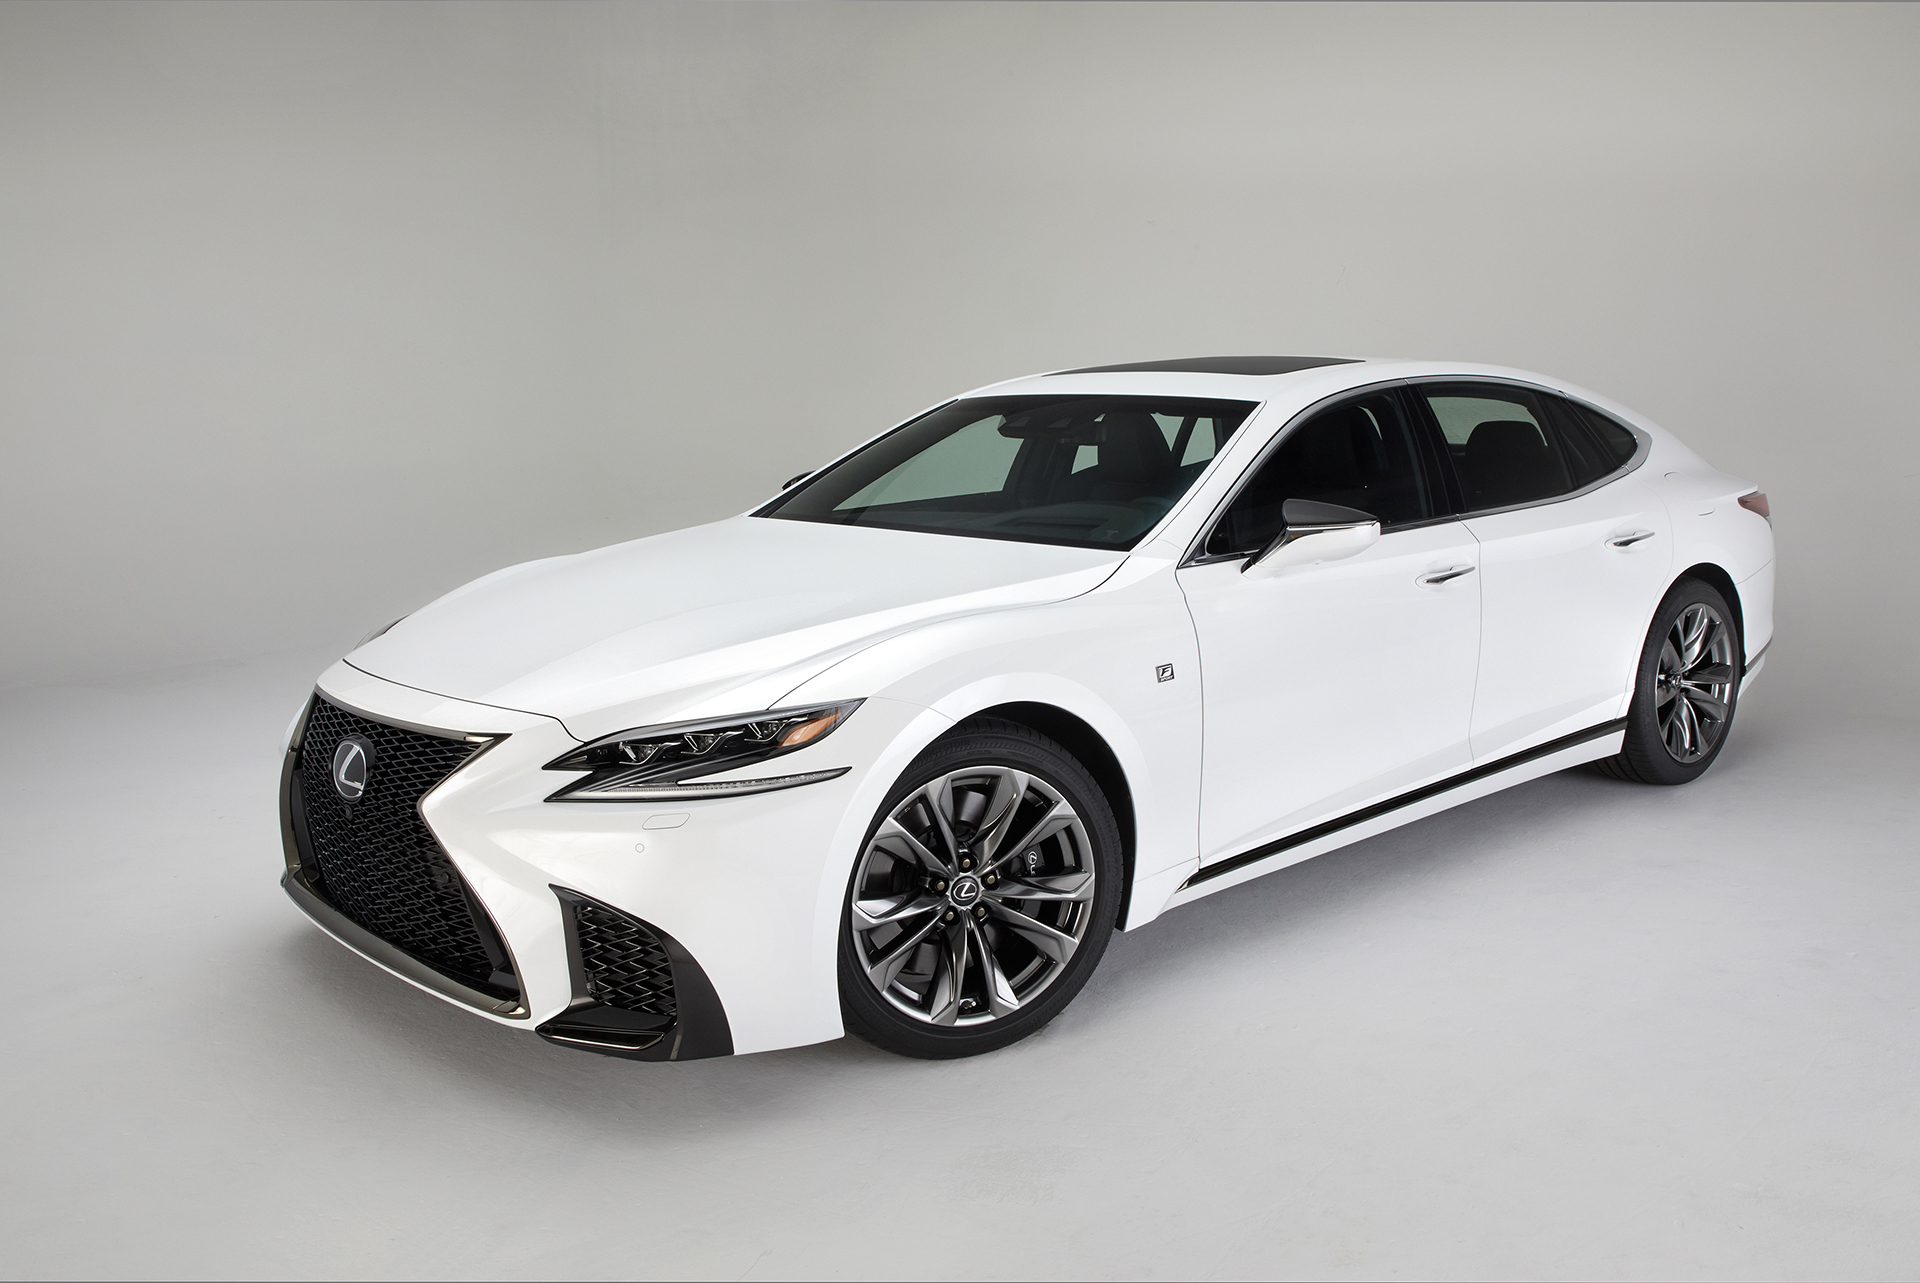 This Is The 2018 Lexus LS 500 F SPORT - The Drive